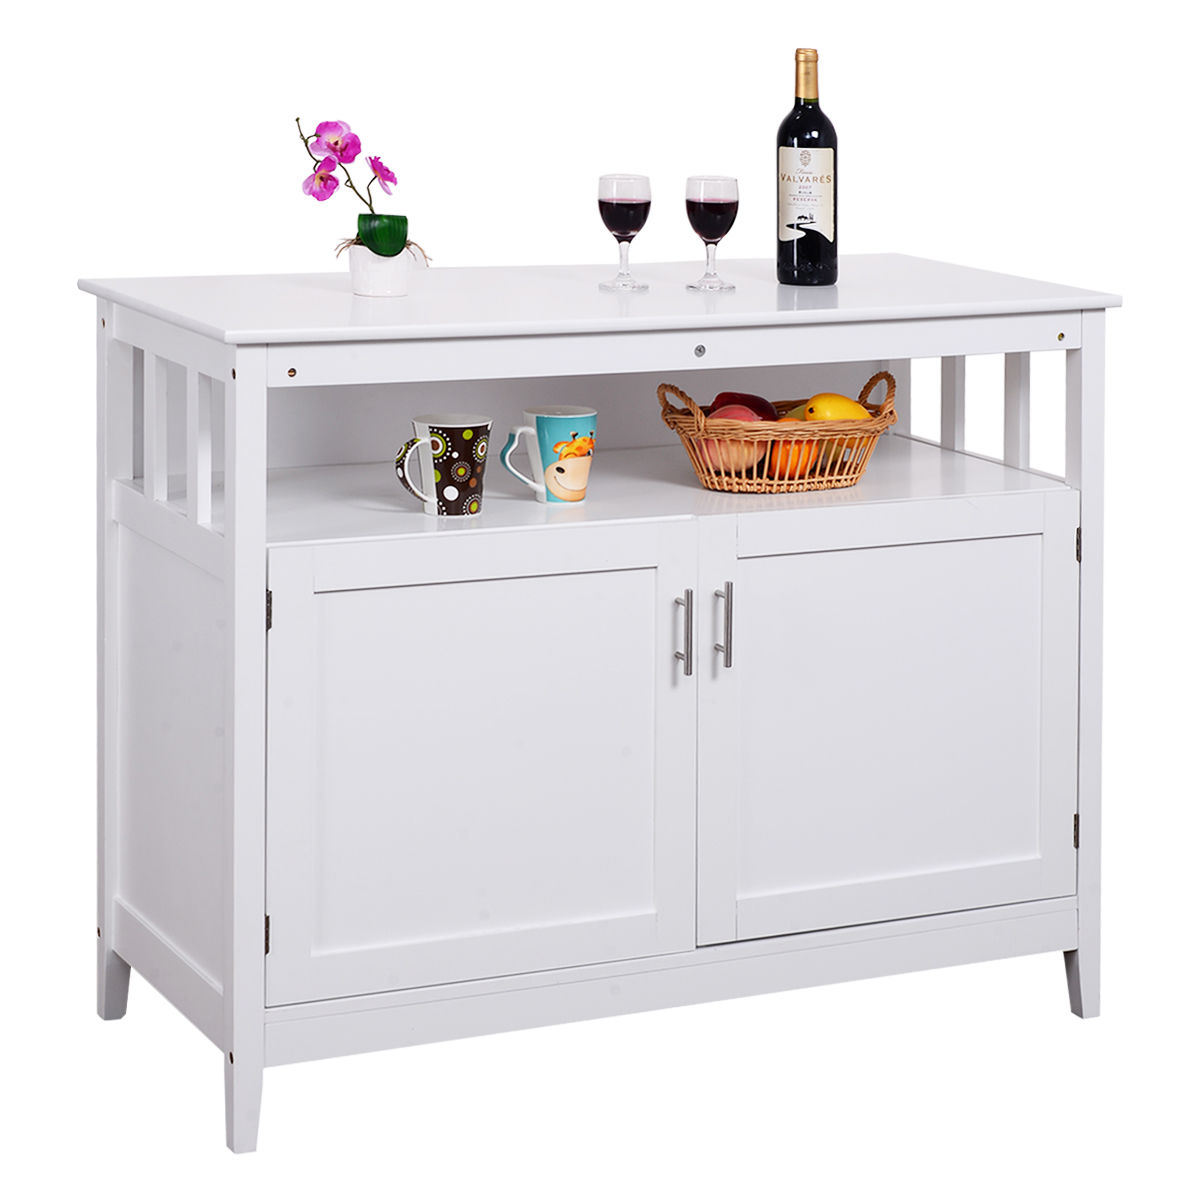 Costway Modern Kitchen Storage Cabinet Buffet Server Table Sideboard Dining Wood White by Costway